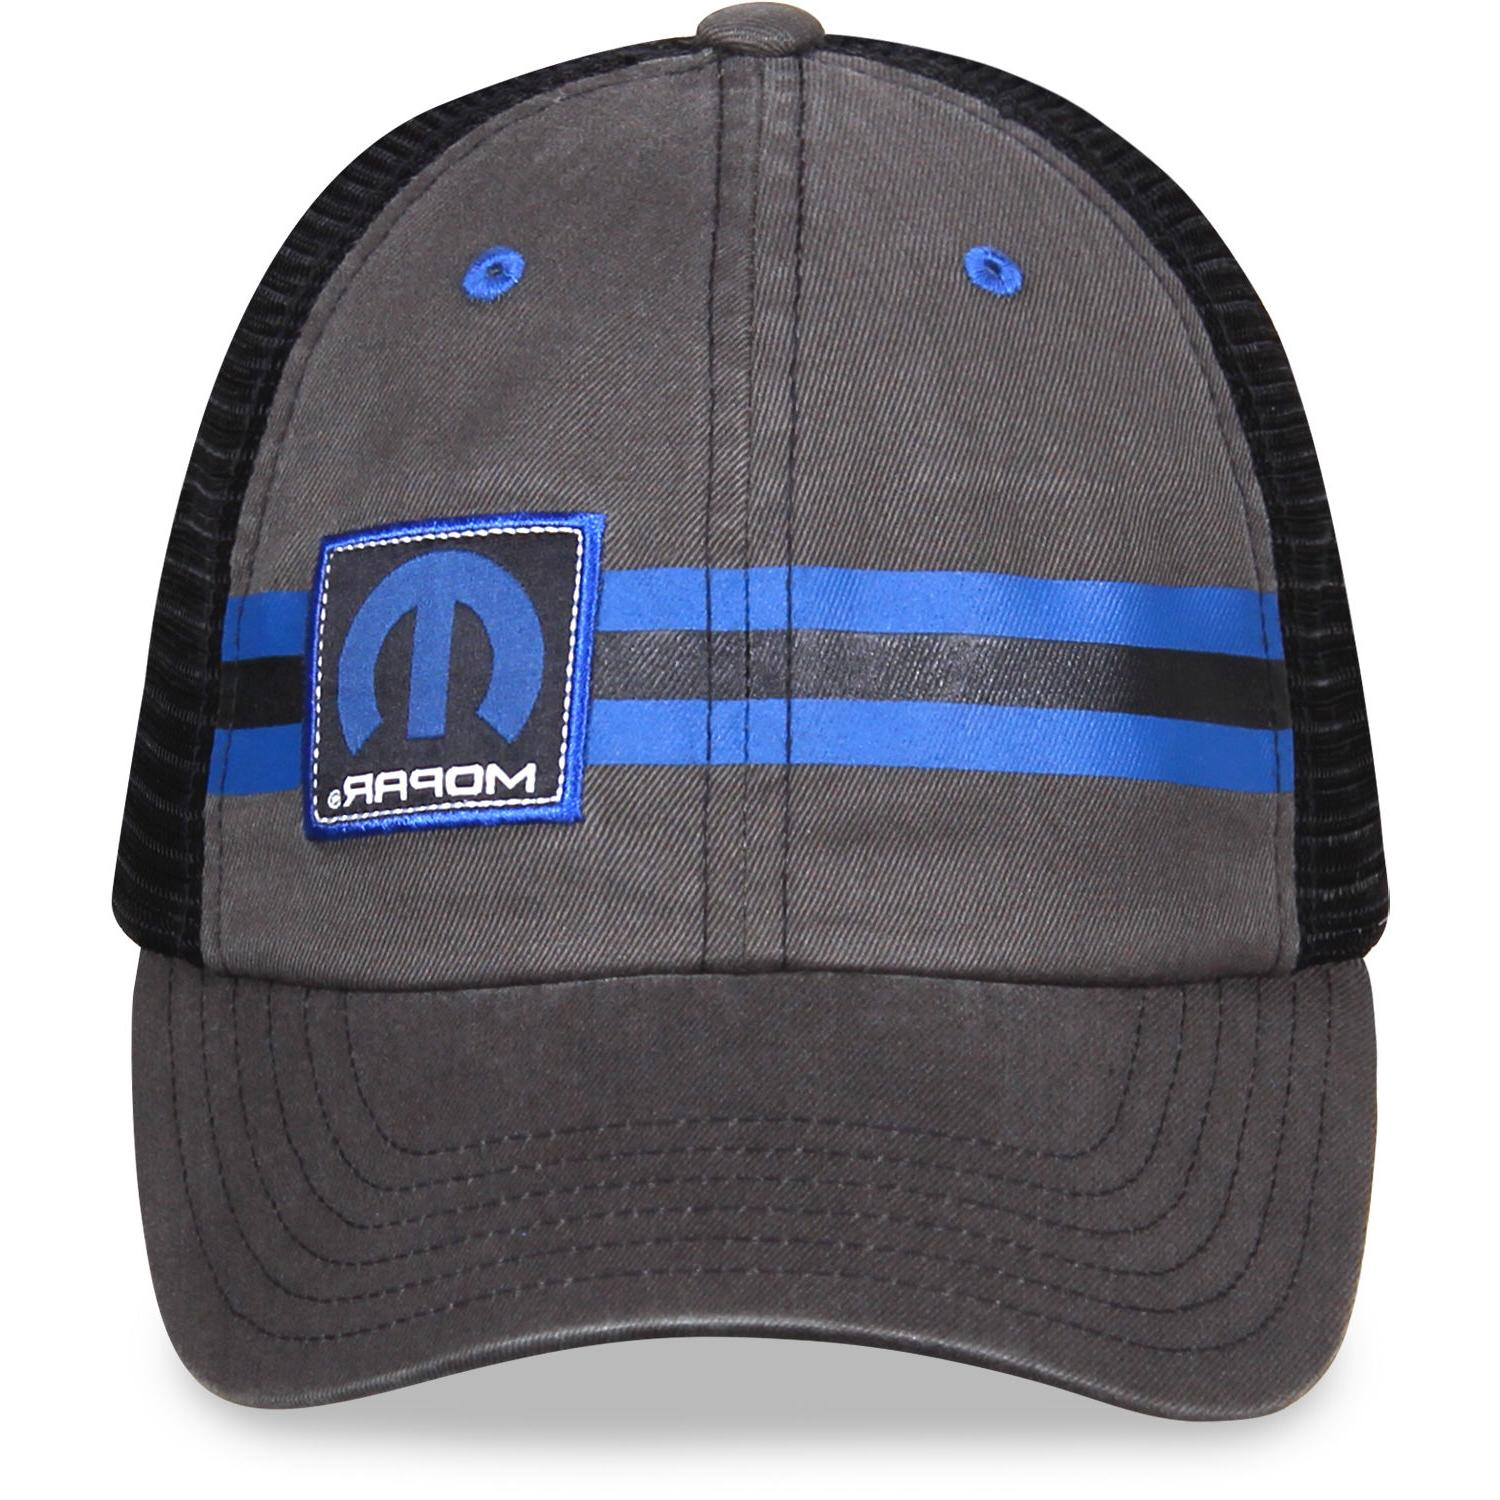 Mopar Gray and Black Hat Style,